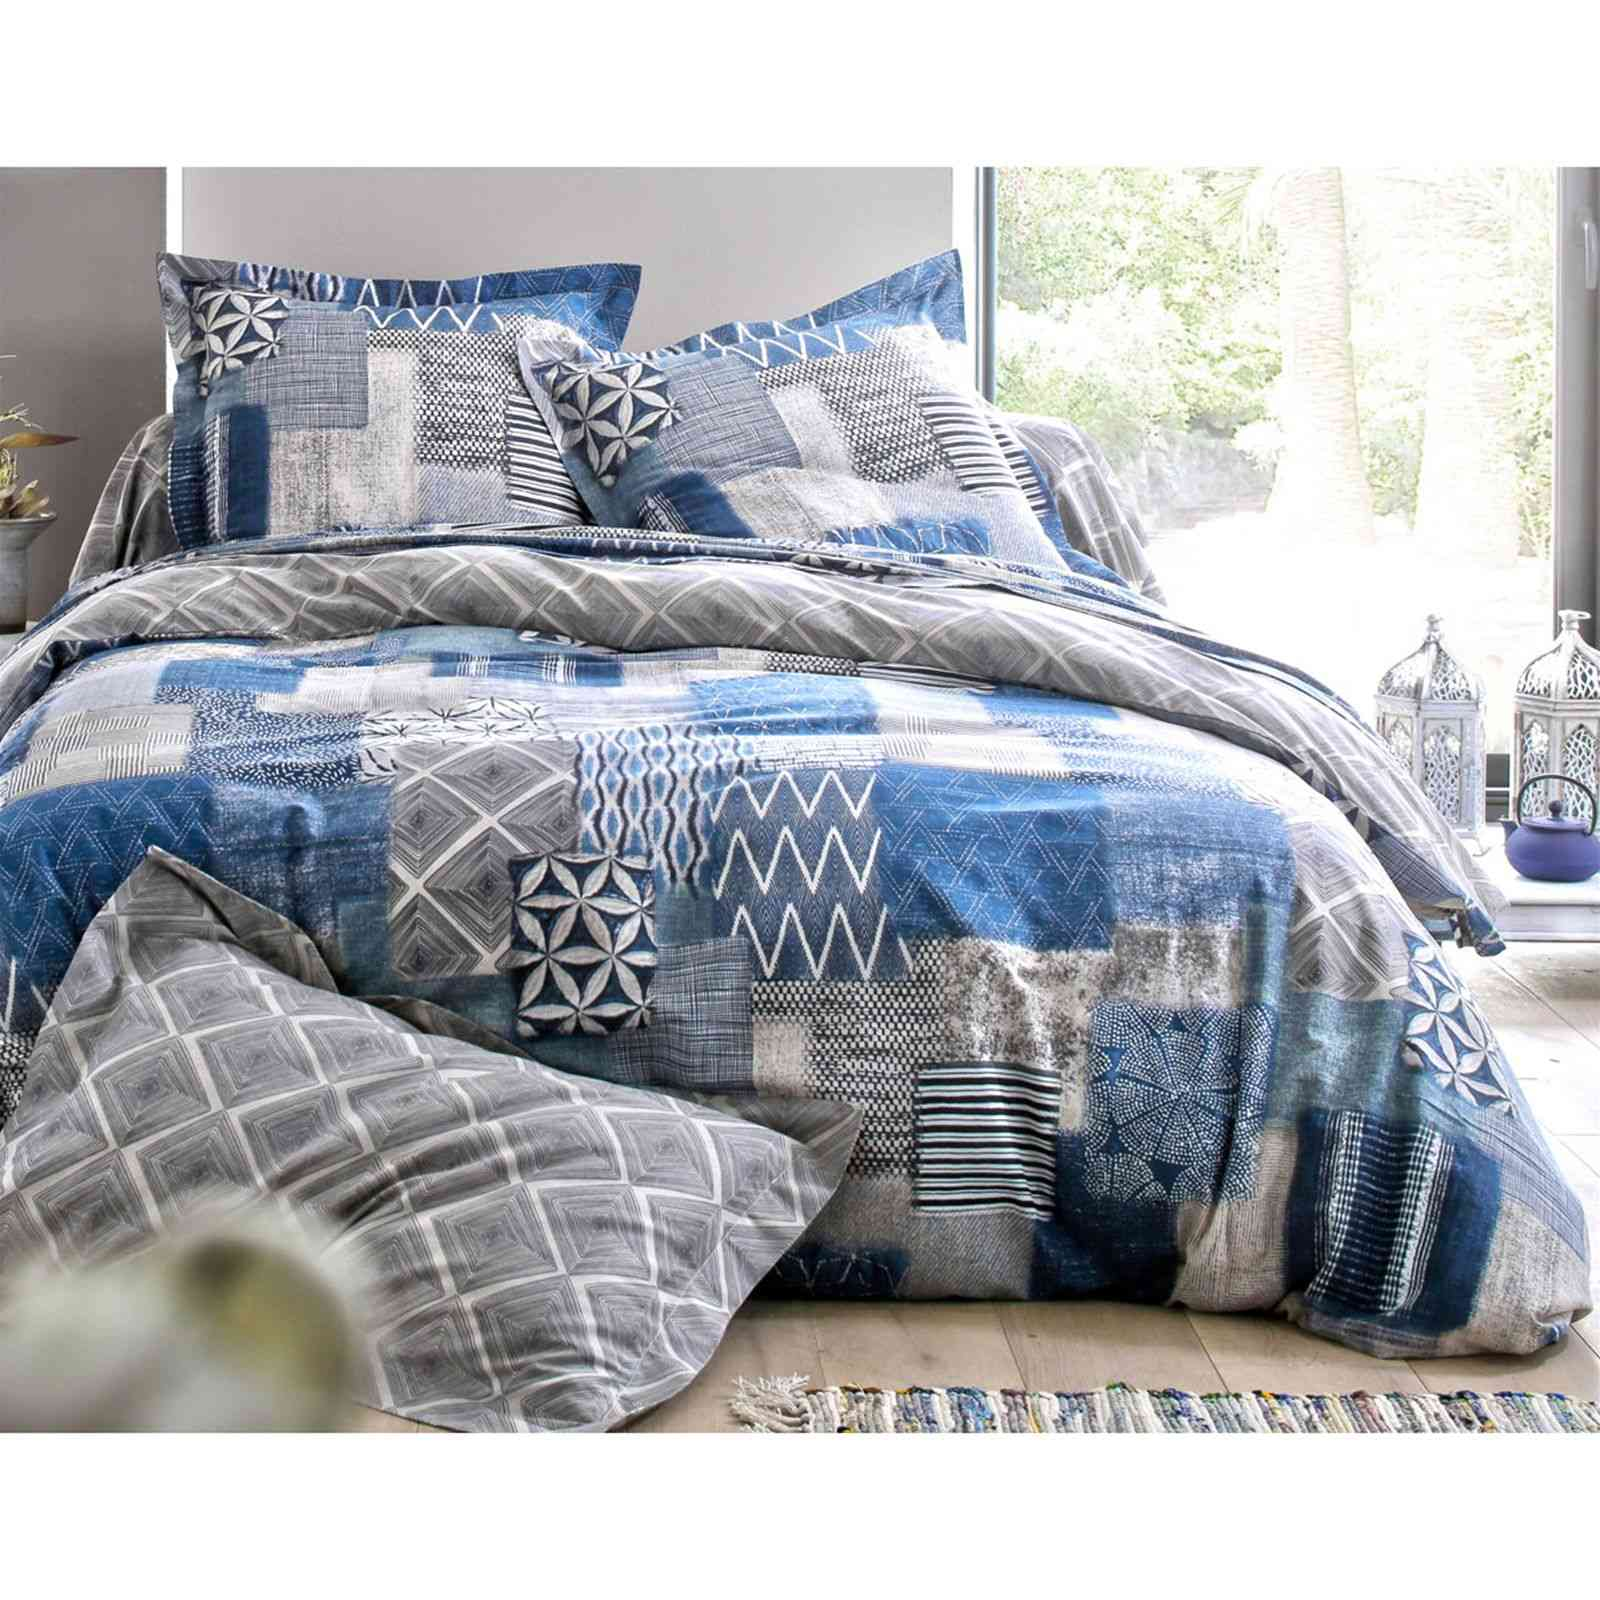 becquet housse de couette effet patchwork bleu brandalley. Black Bedroom Furniture Sets. Home Design Ideas